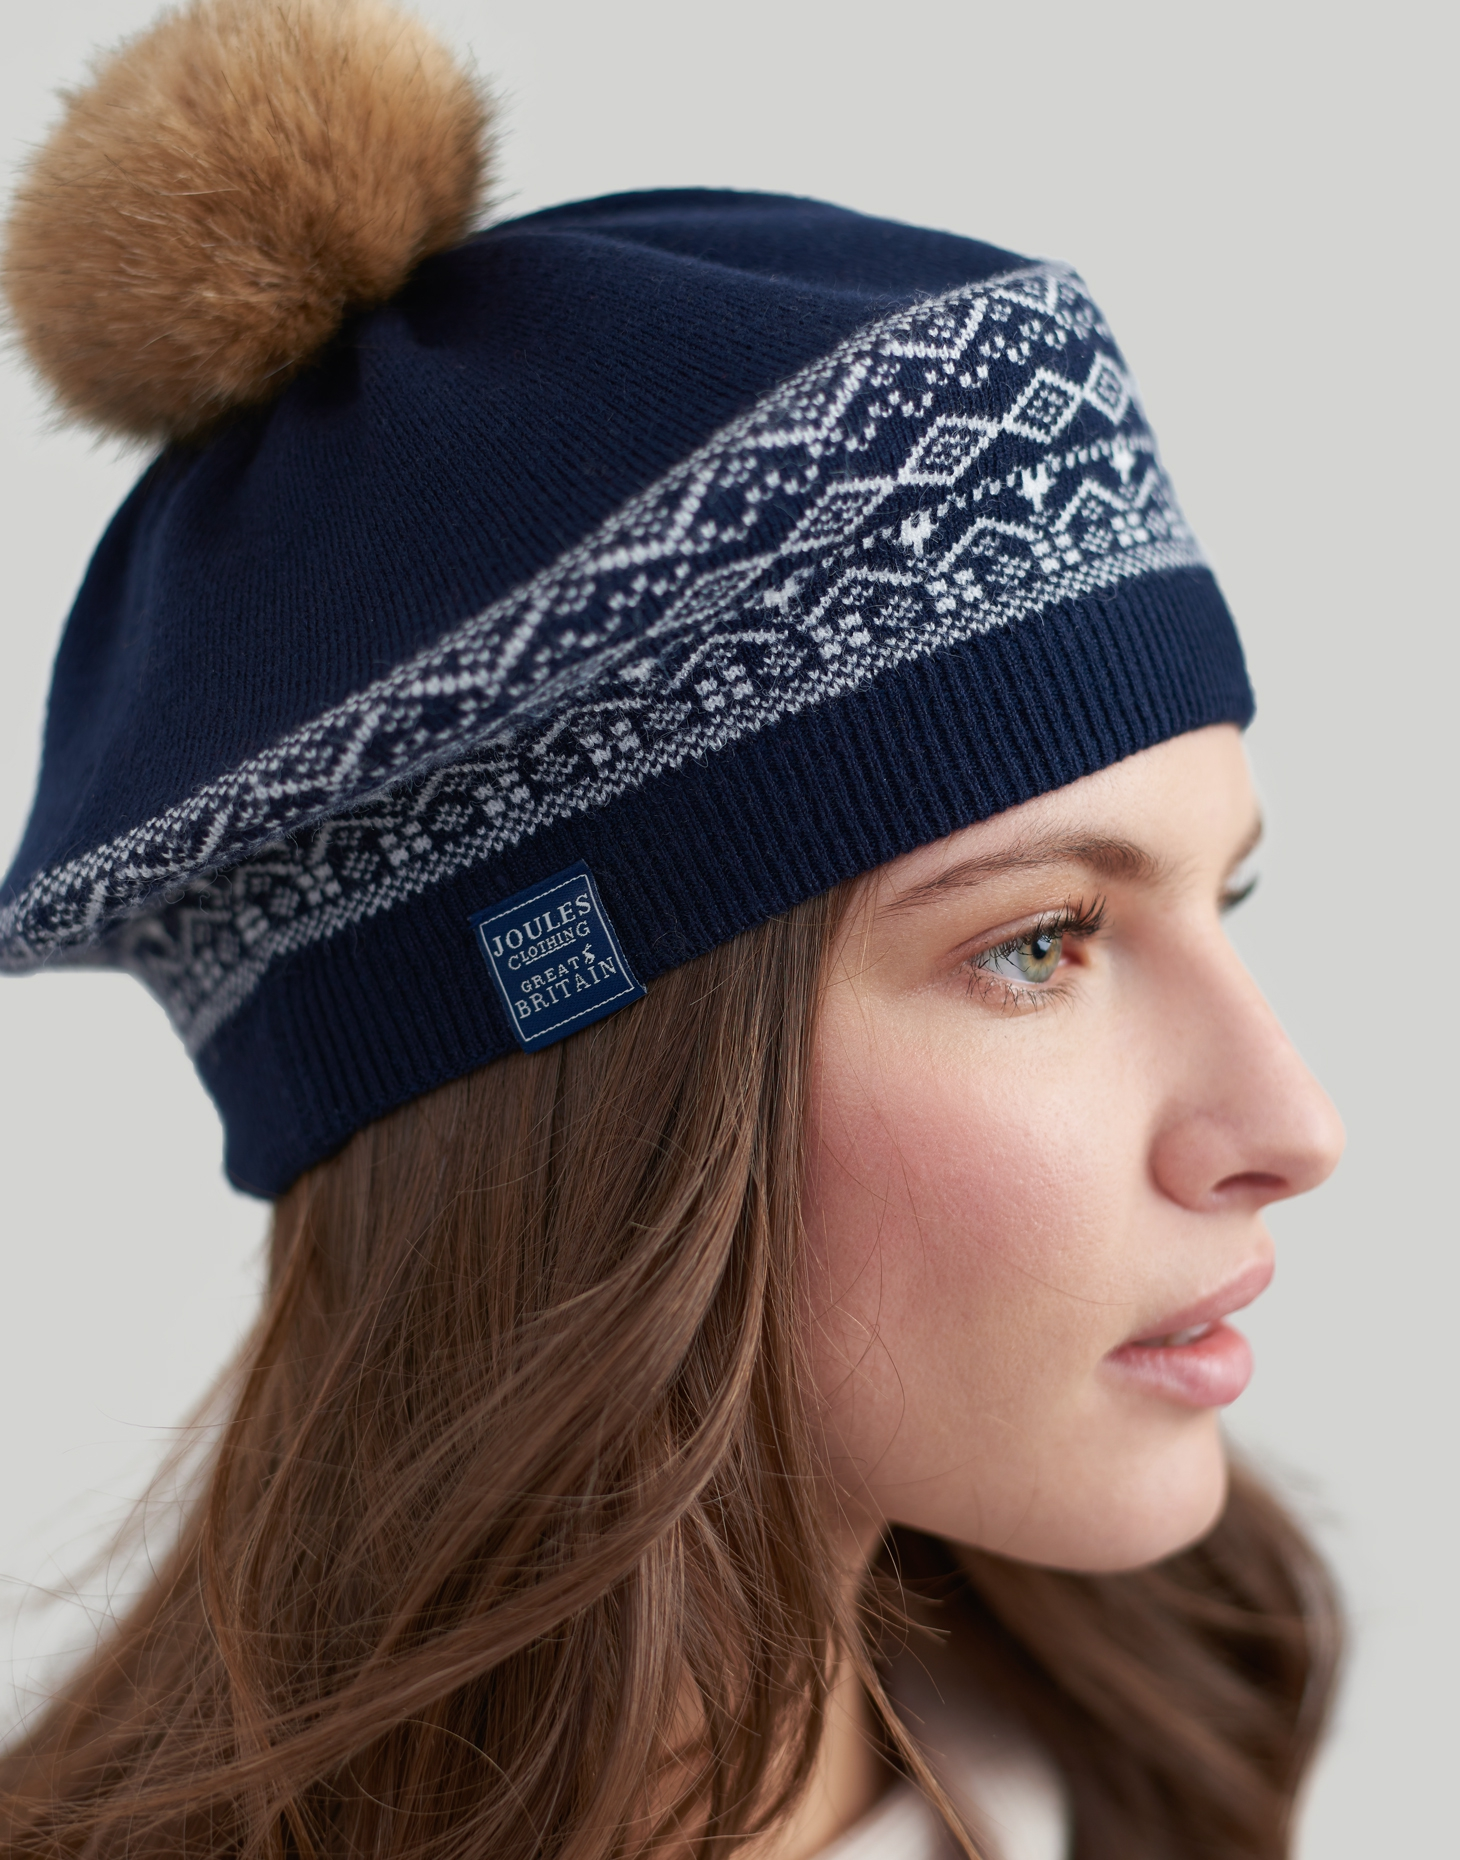 b0056fb41 Details about Joules women Perbury Fairisle Knitted Beret With A Pop A Pom  in in One Size